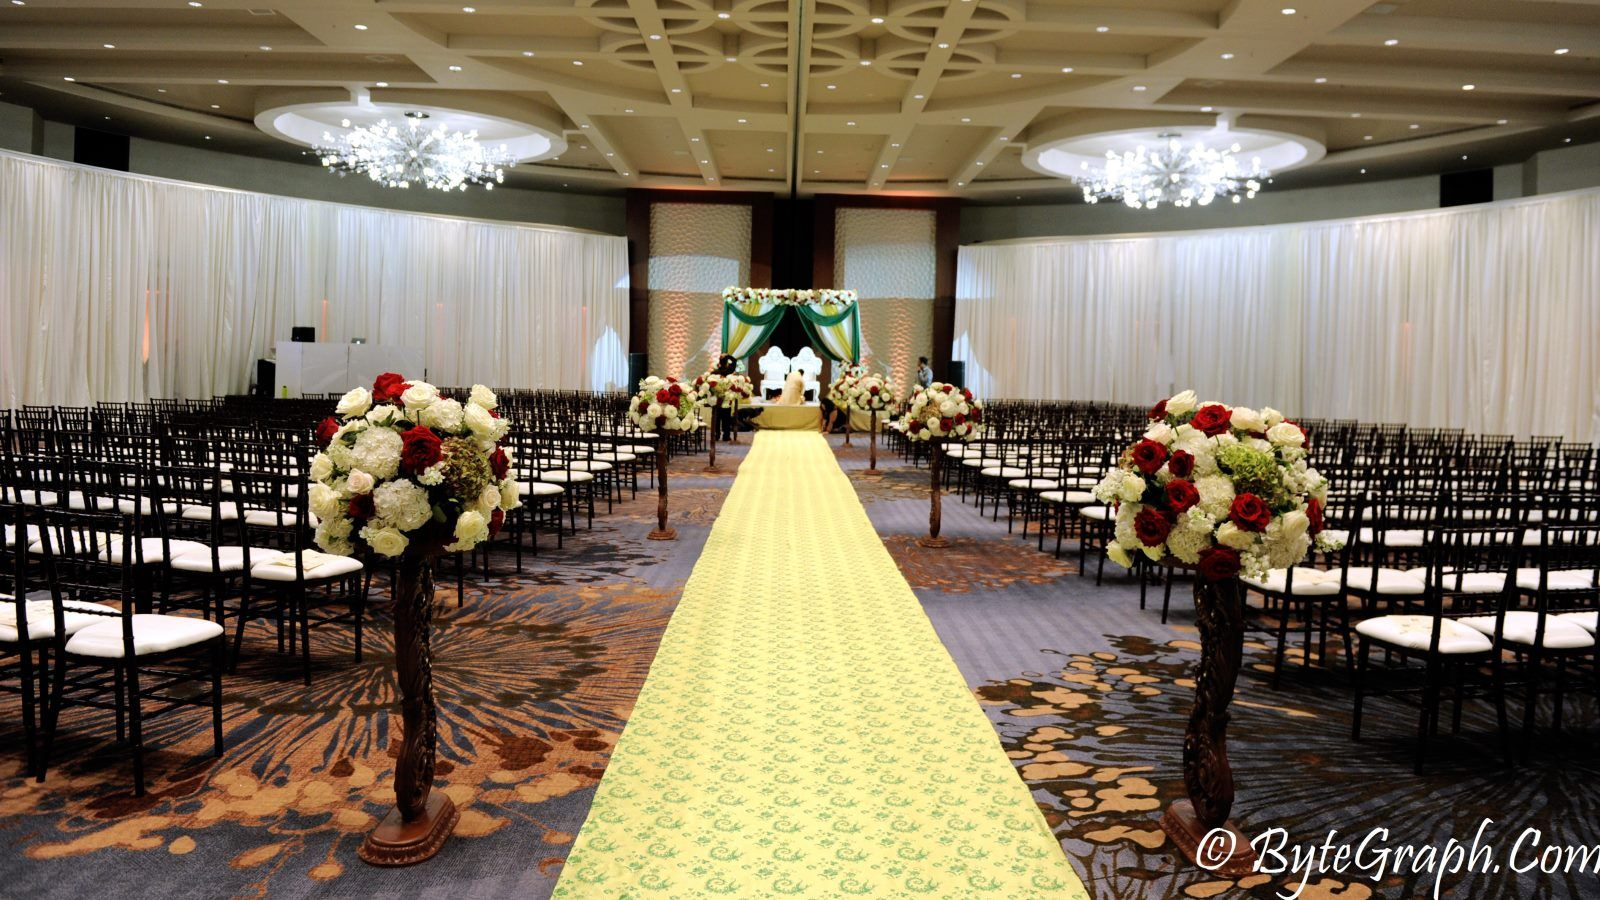 Atlanta wedding venues the westin peachtree plaza atlanta the westin peachtree plaza atlanta weddings junglespirit